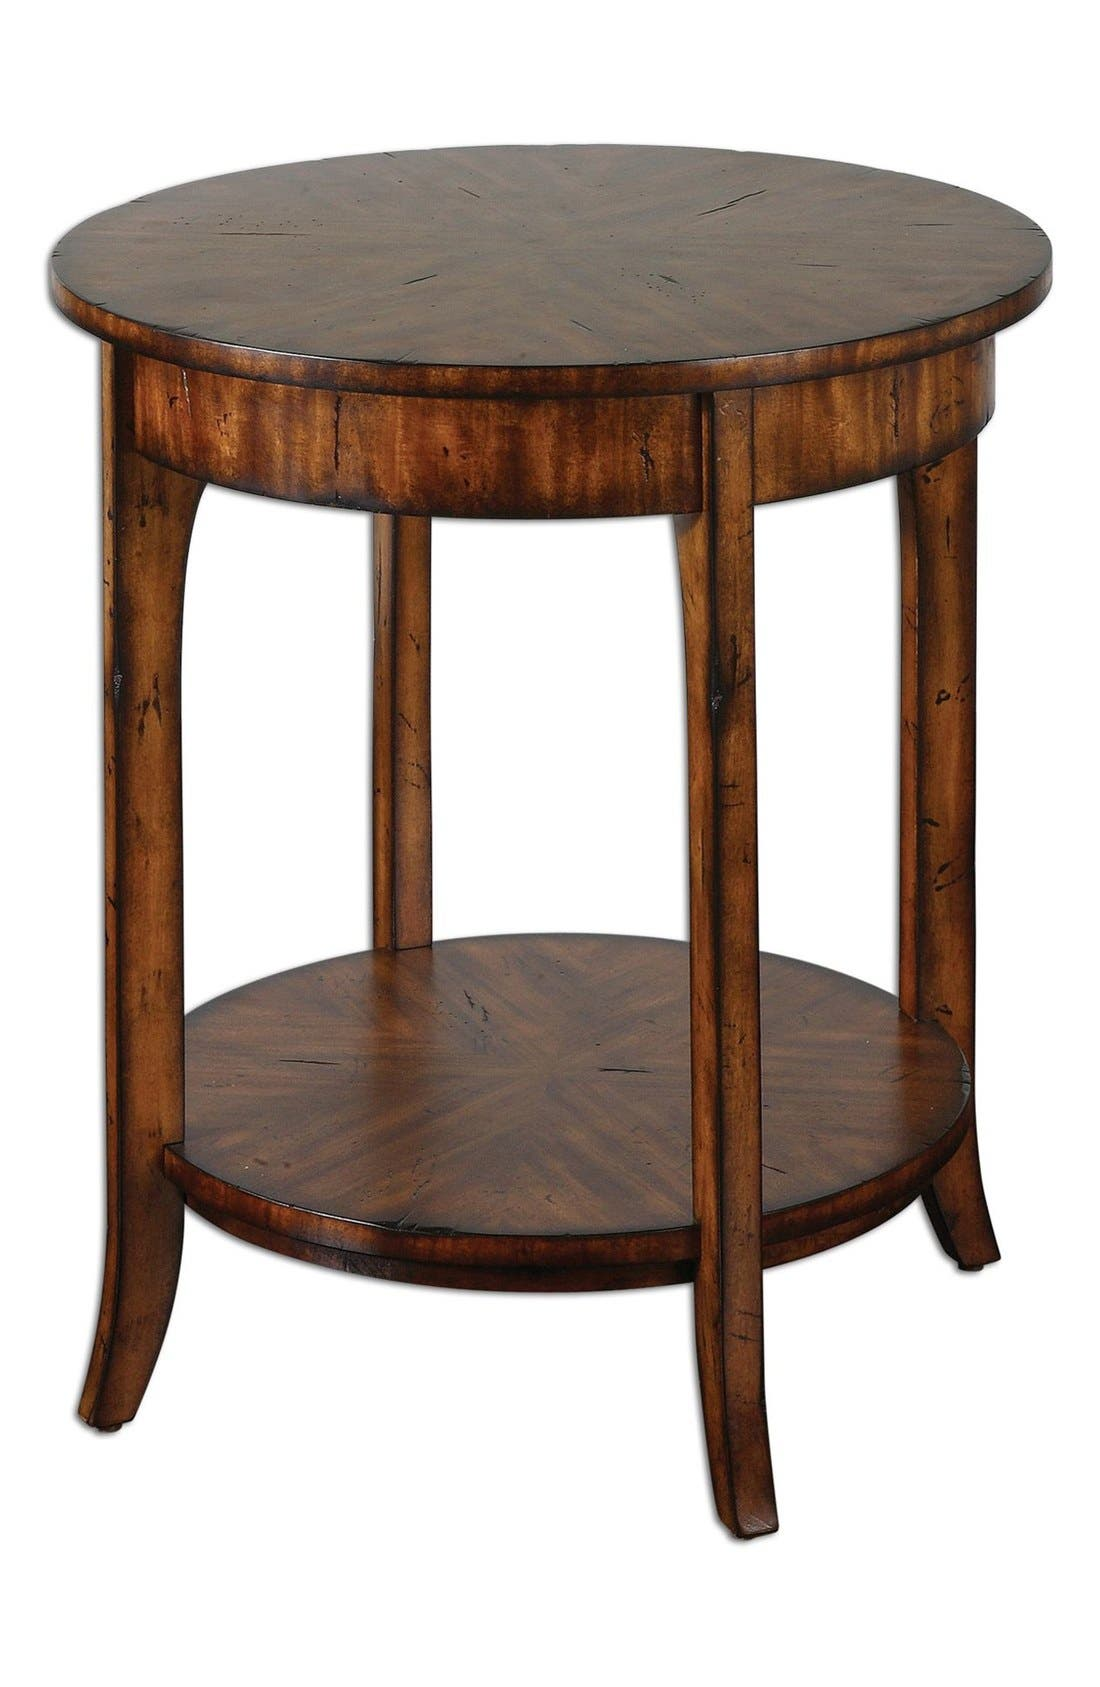 Main Image - Uttermost 'Carmel' Distressed Wood End Table